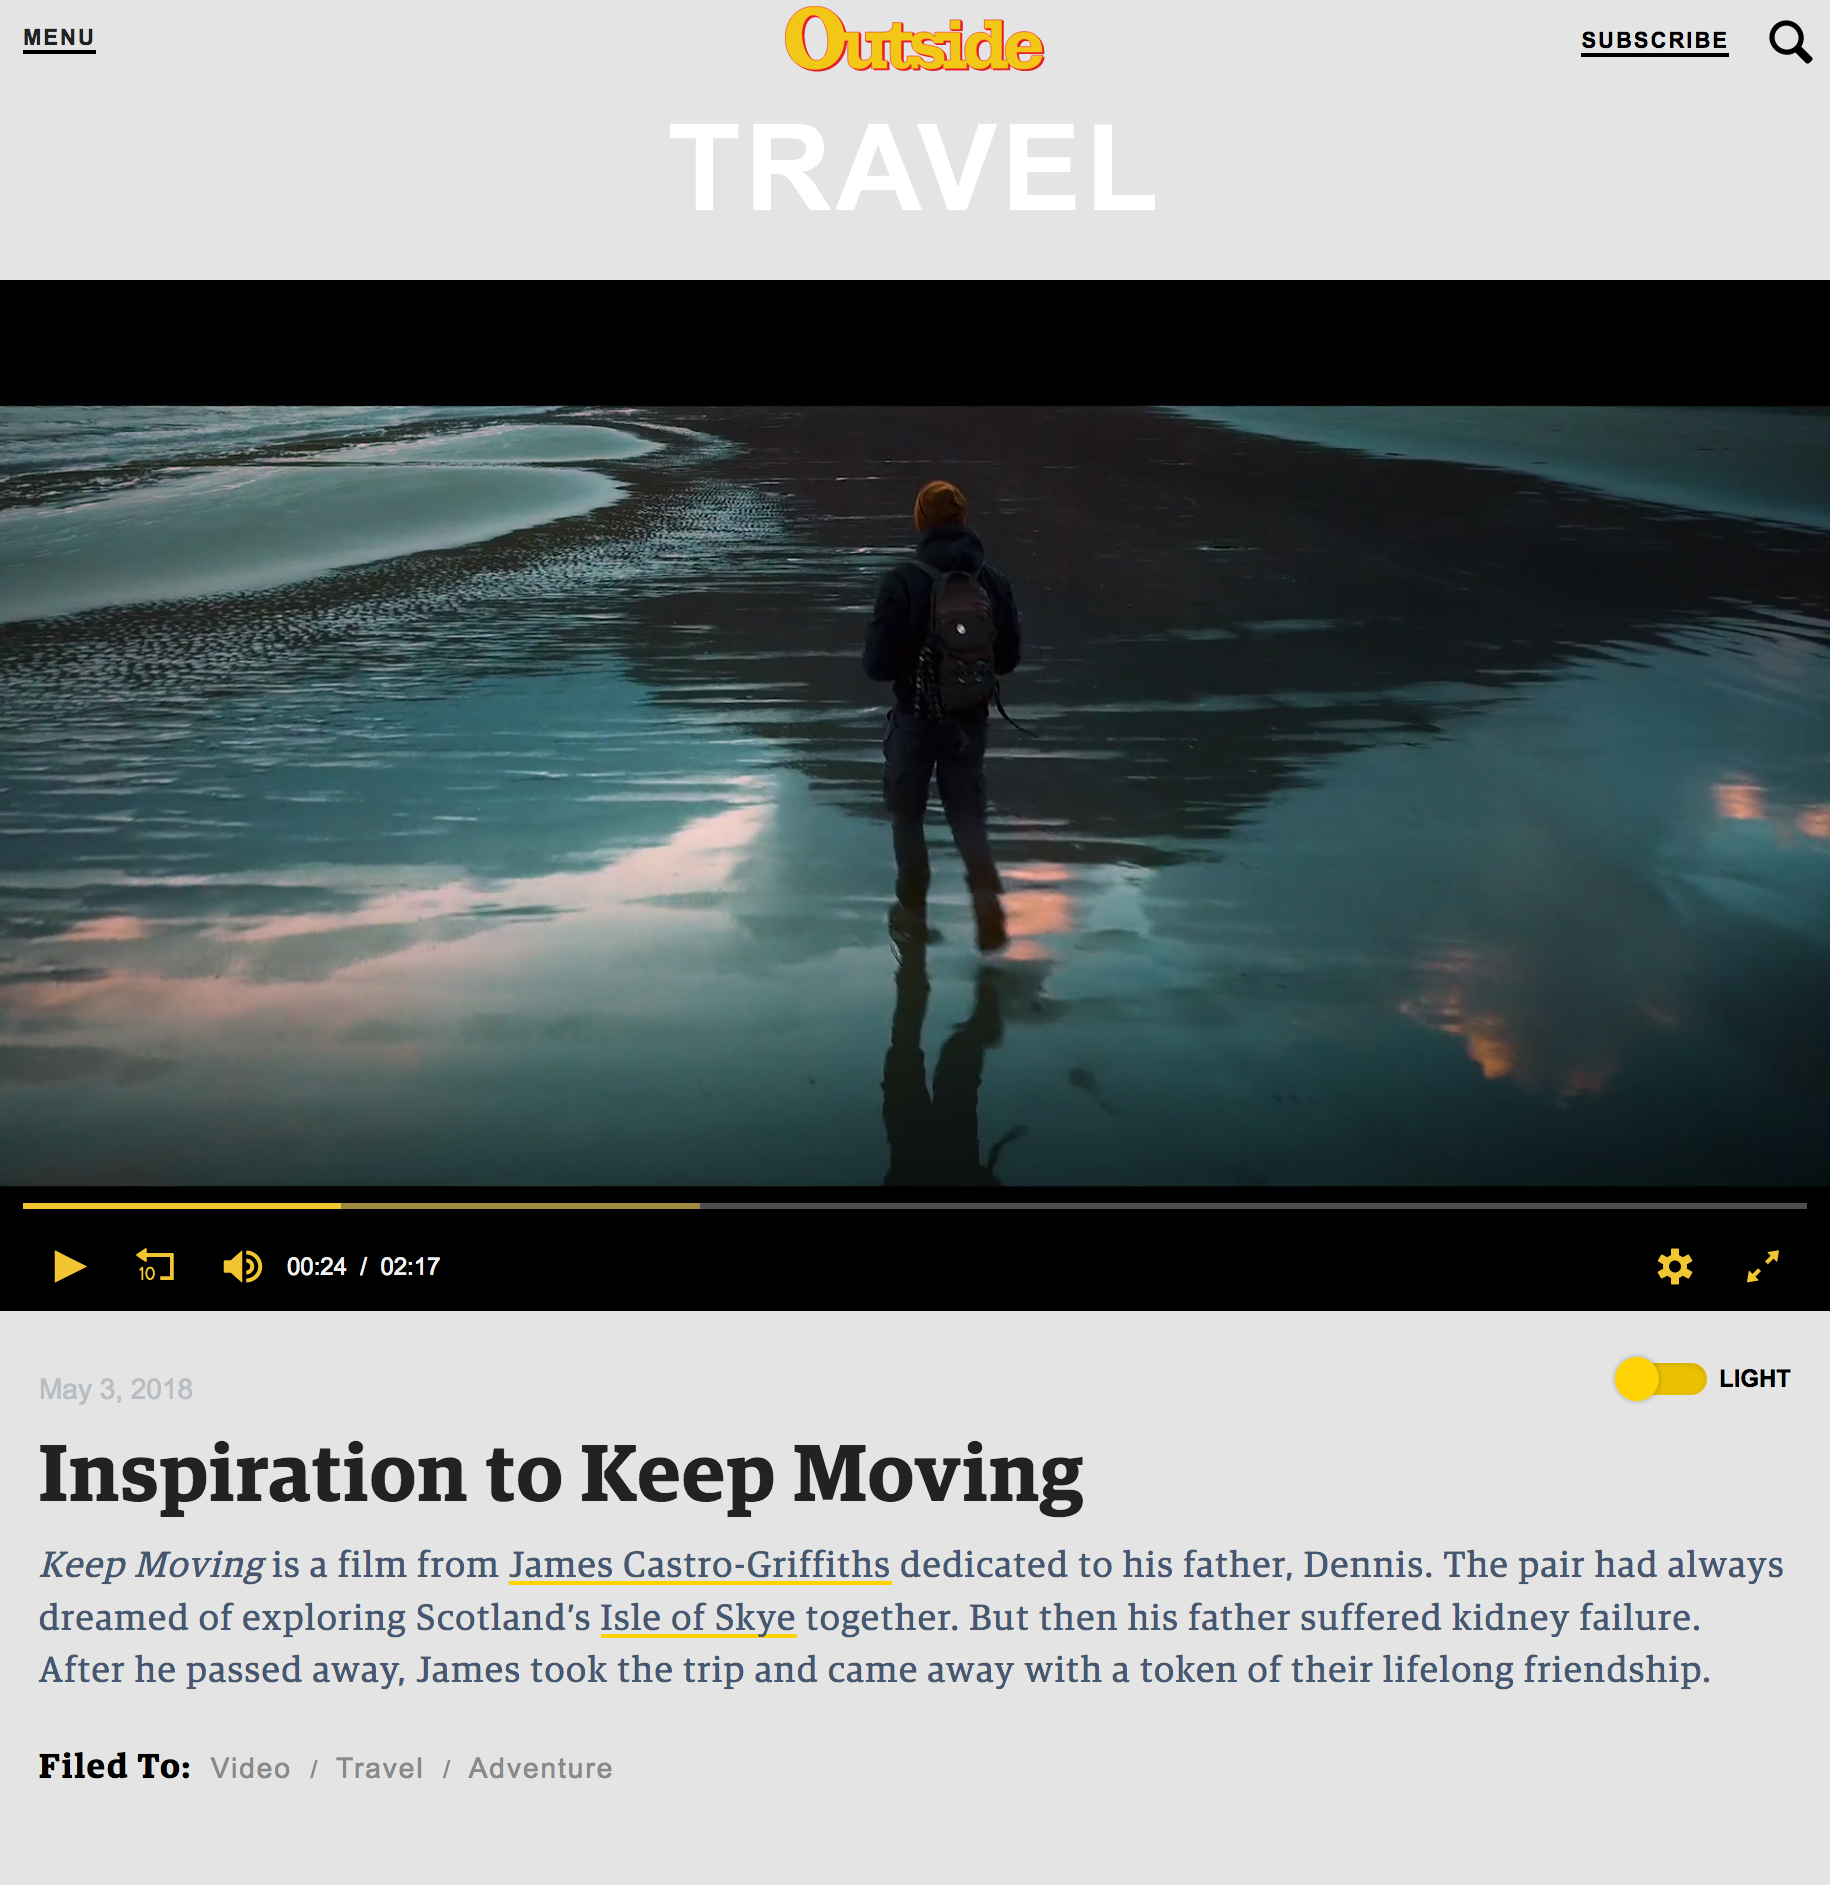 https://www.outsideonline.com/2302286/inspiration-keep-moving